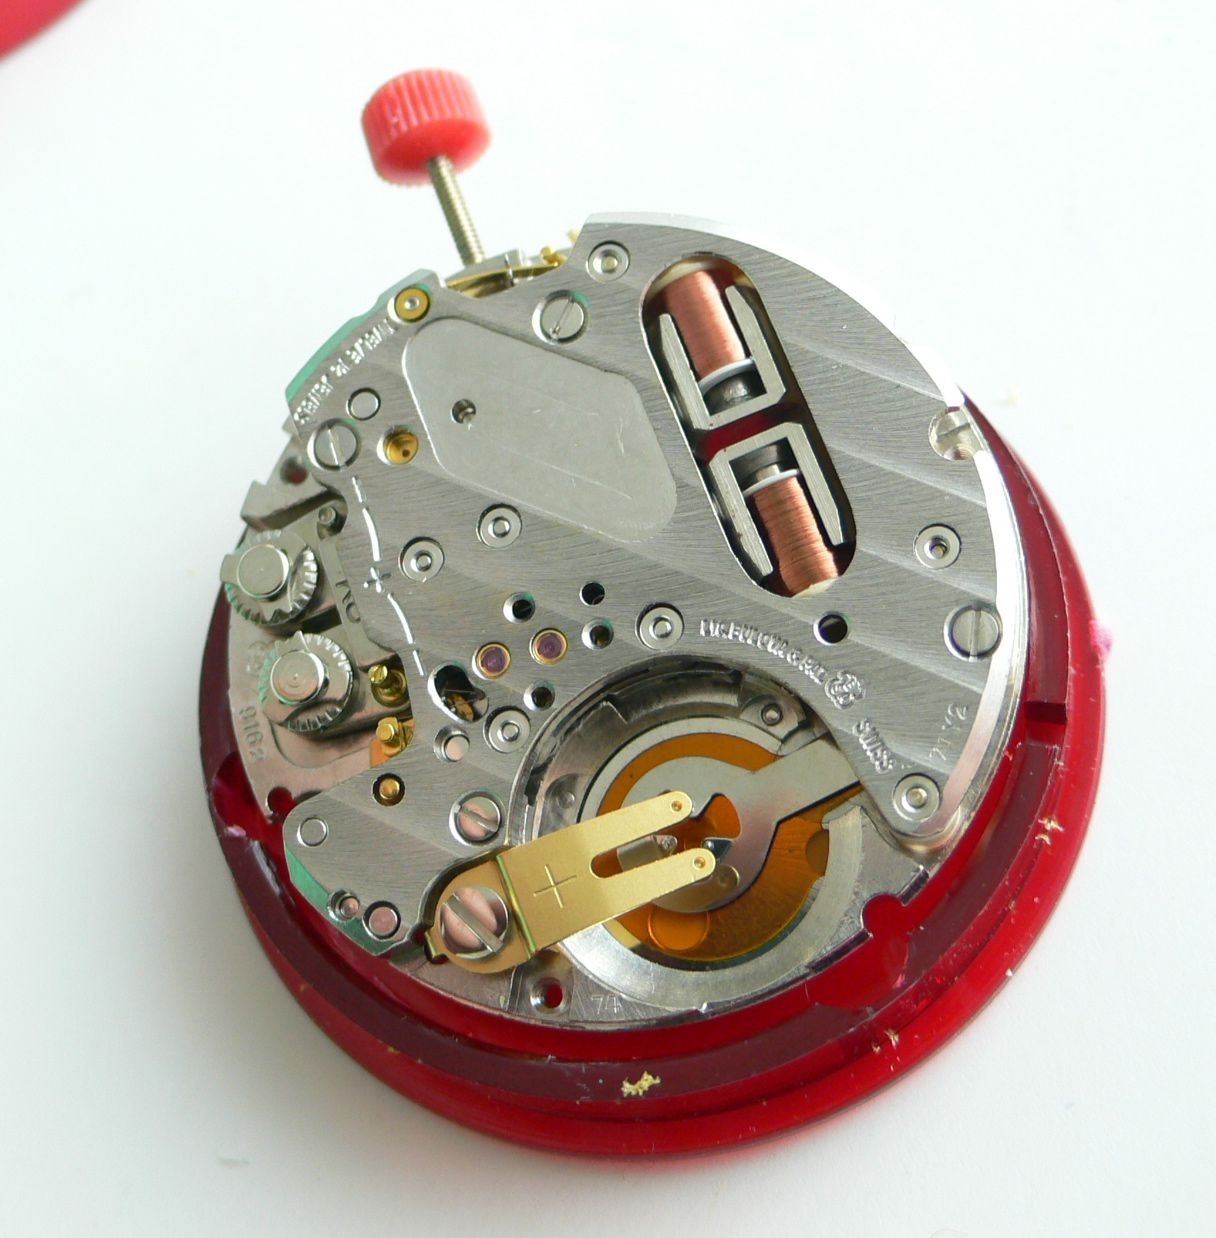 ETA 9162 Quartz Watch Movement -One Only!